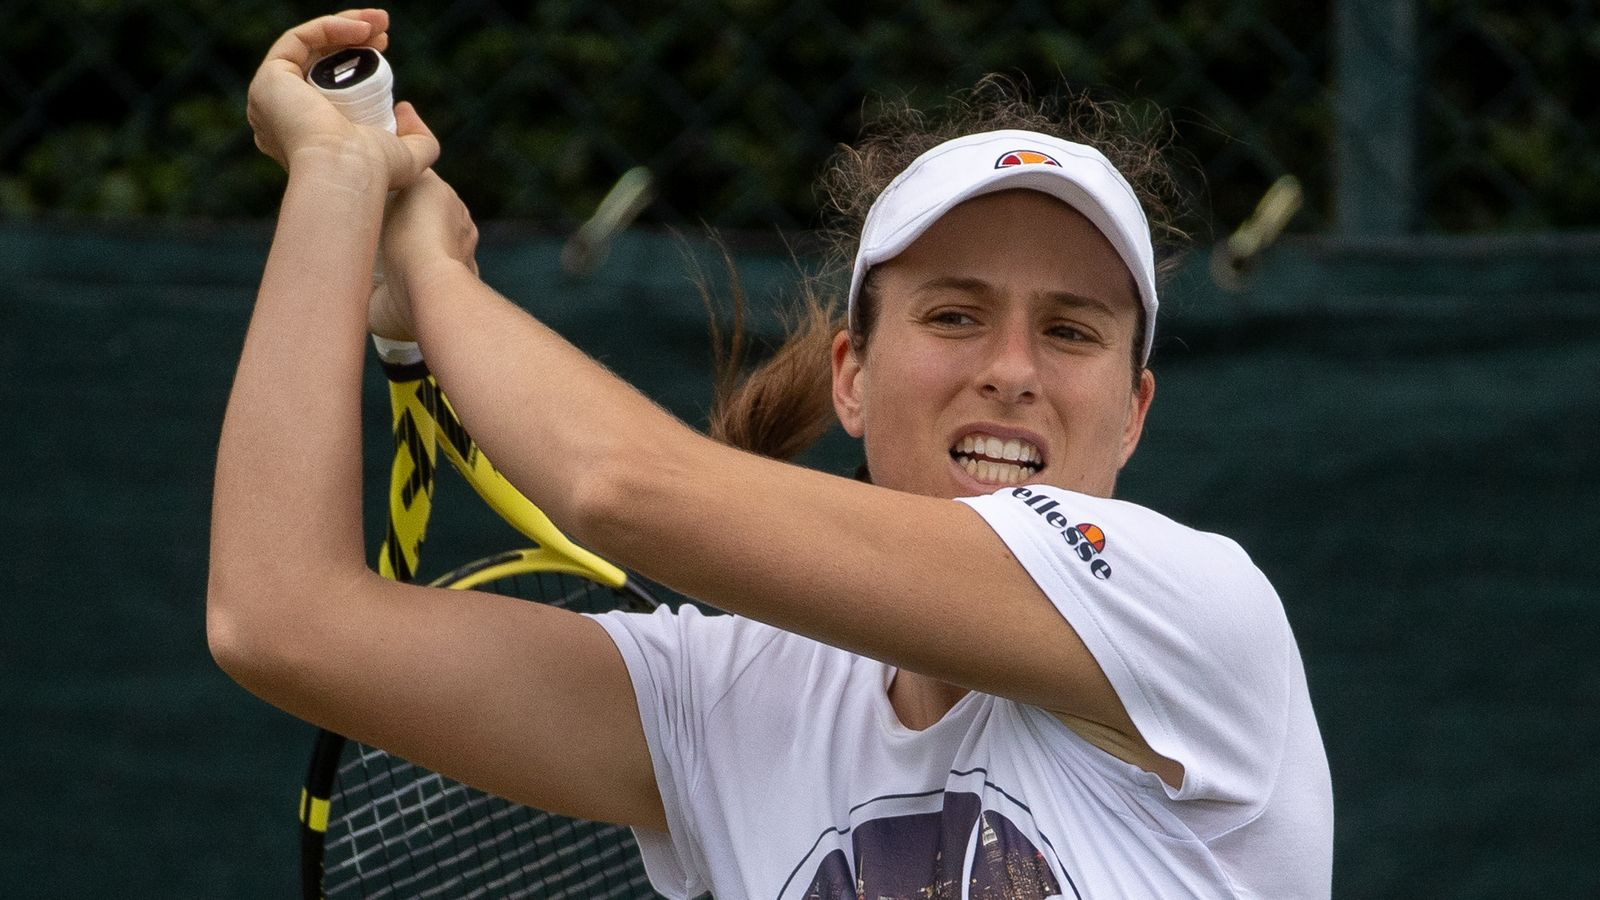 Johanna Konta forced to withdraw from Wimbledon after coronavirus contact